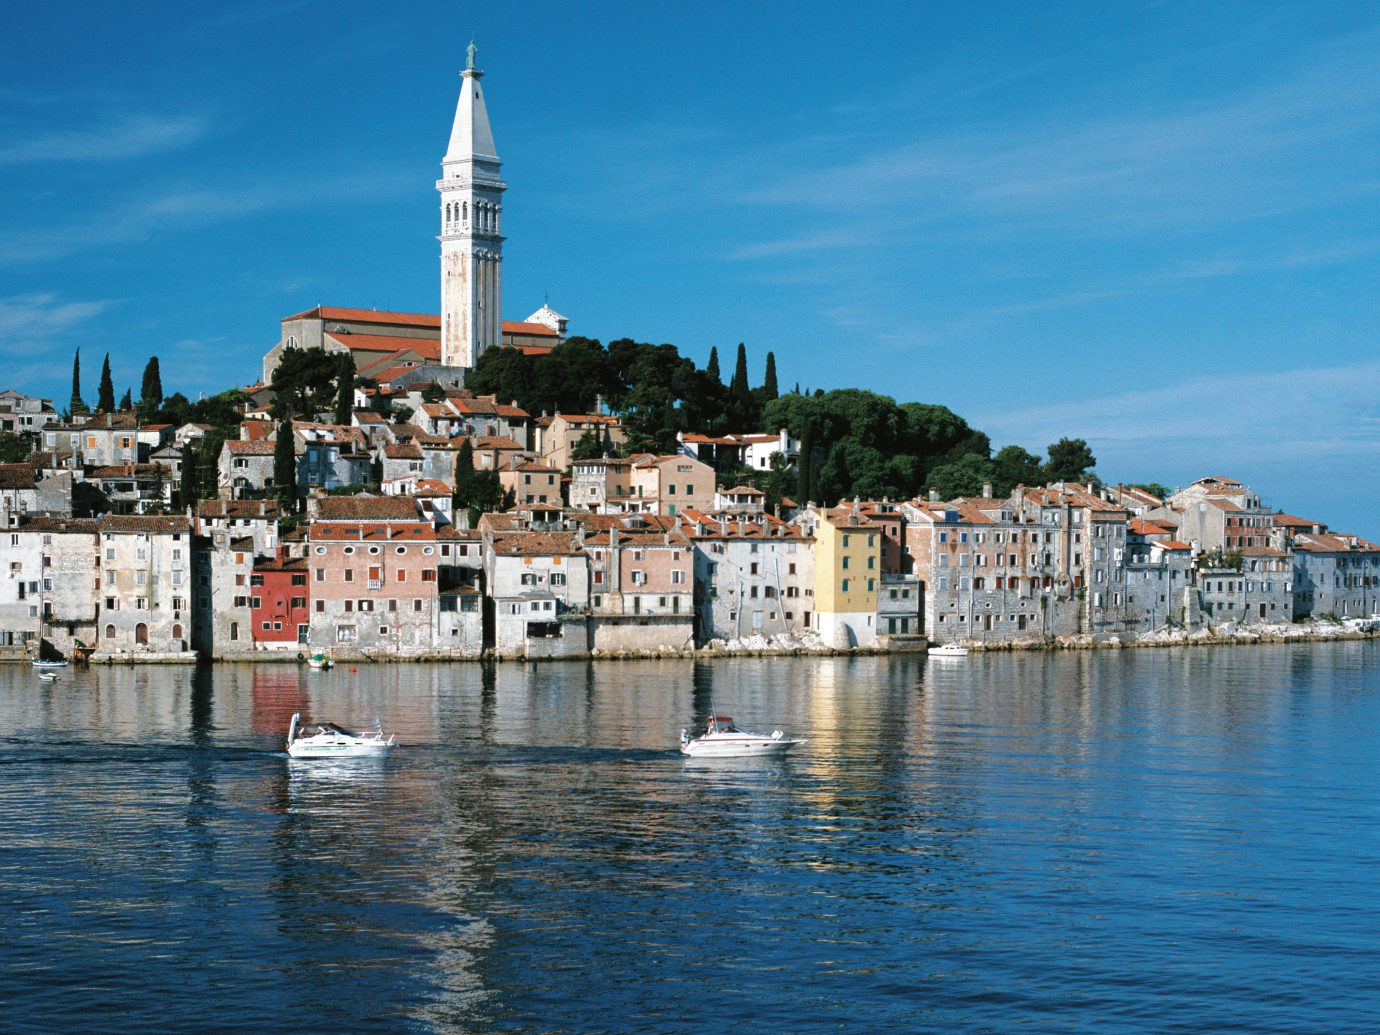 boats in the water in front of View of Rovinj, Croatia